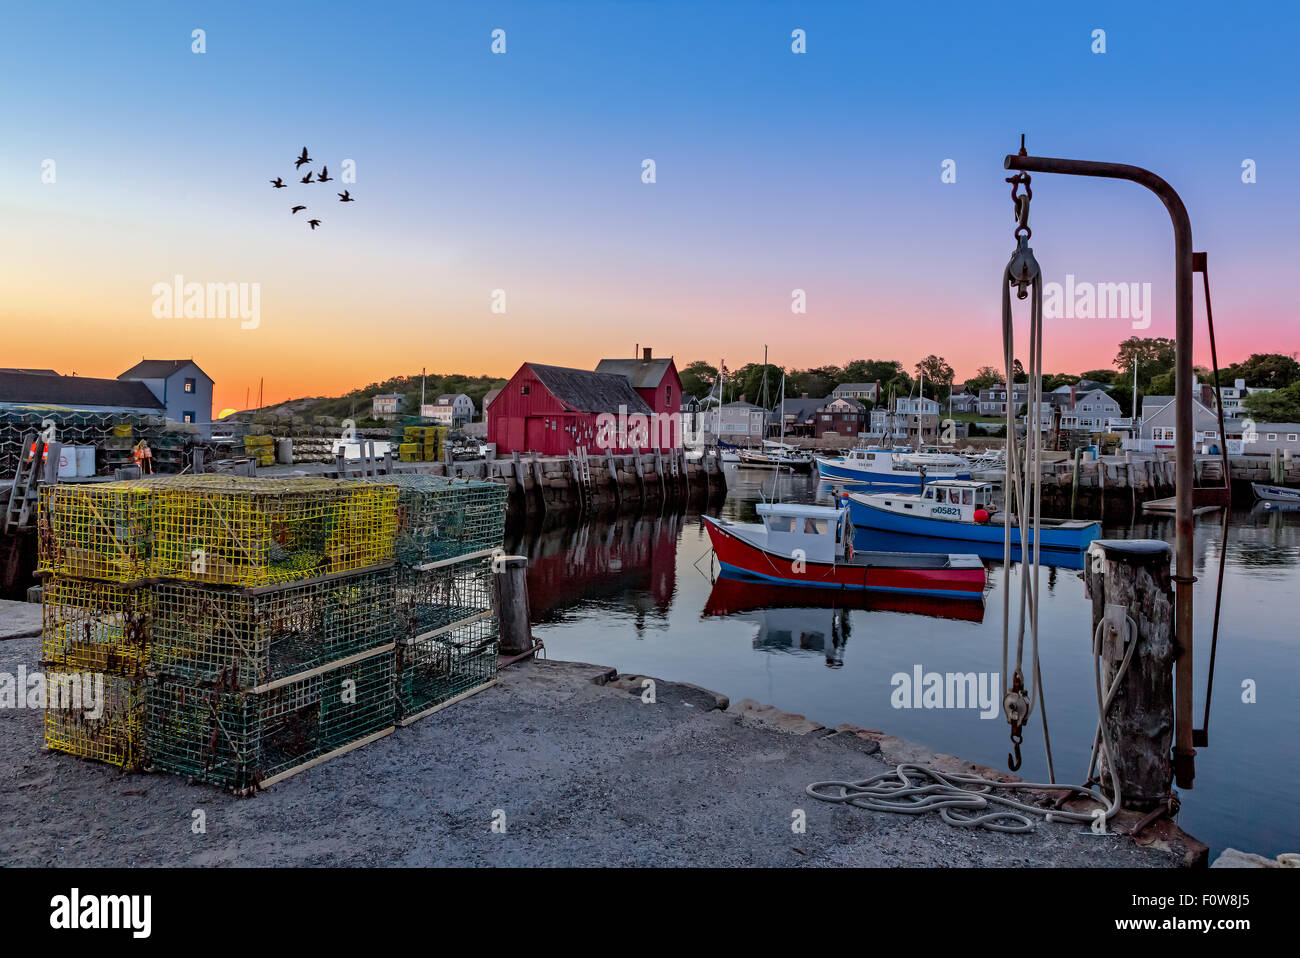 The quintessential New England Motif Number One sunrise. - Stock Image